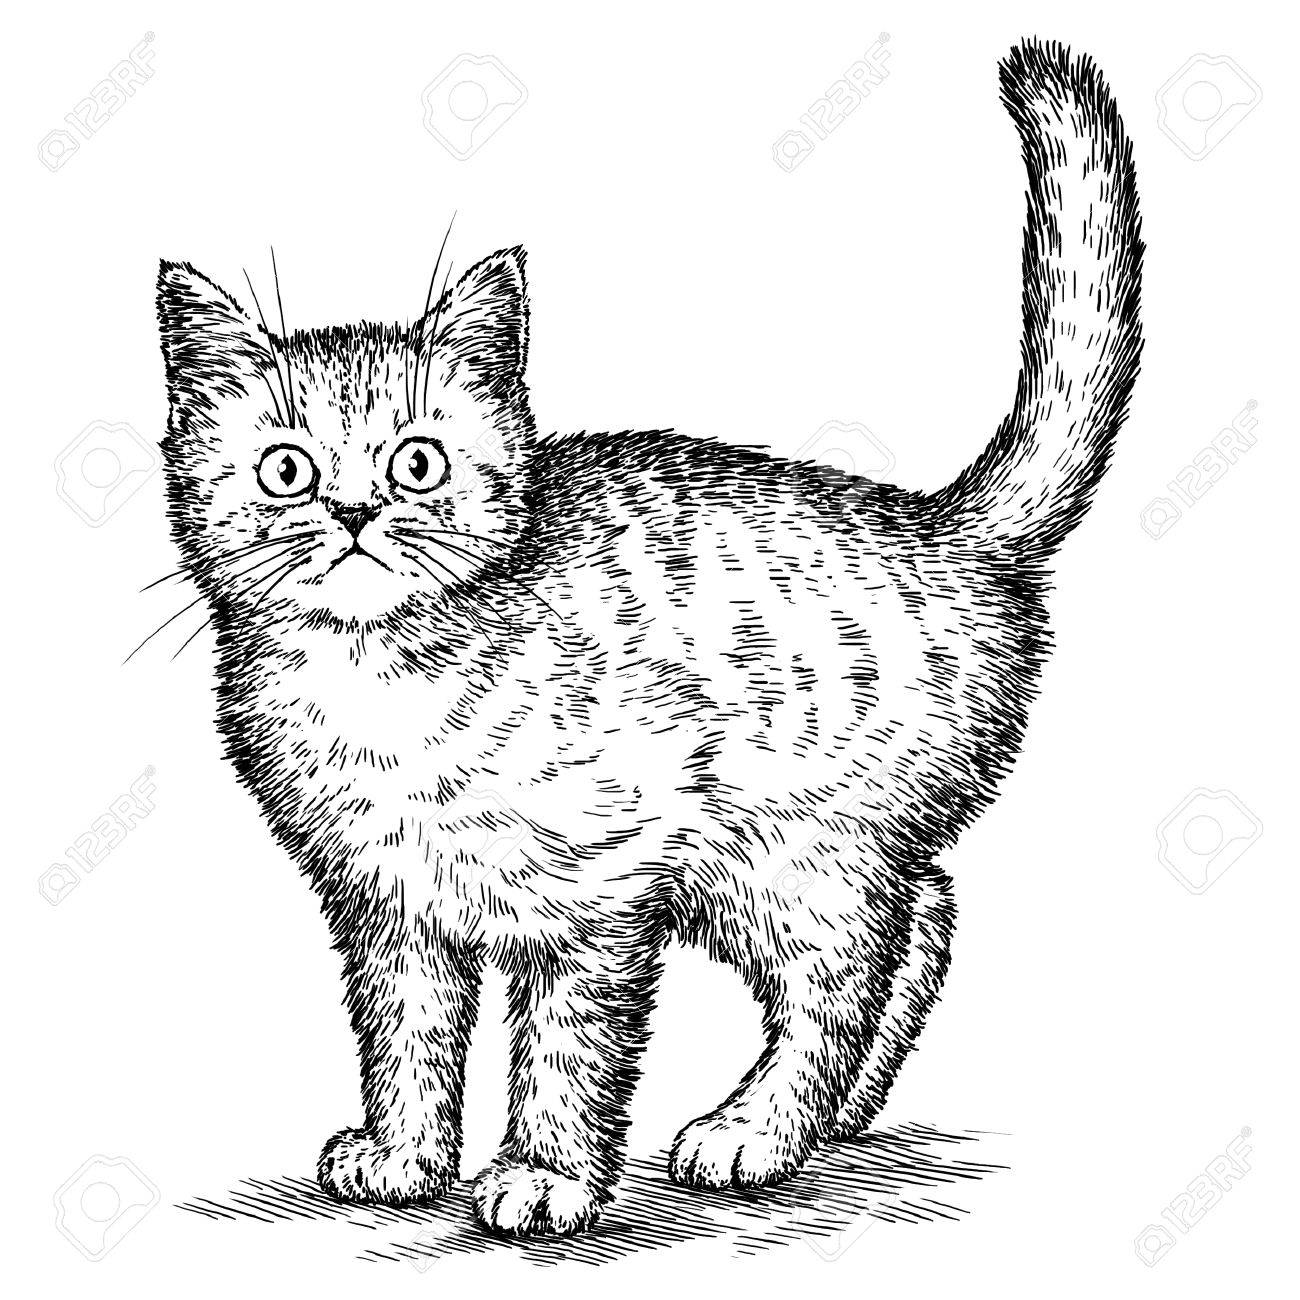 1300x1300 Engrave Isolated Kitten Illustration Sketch. Linear Art Stock